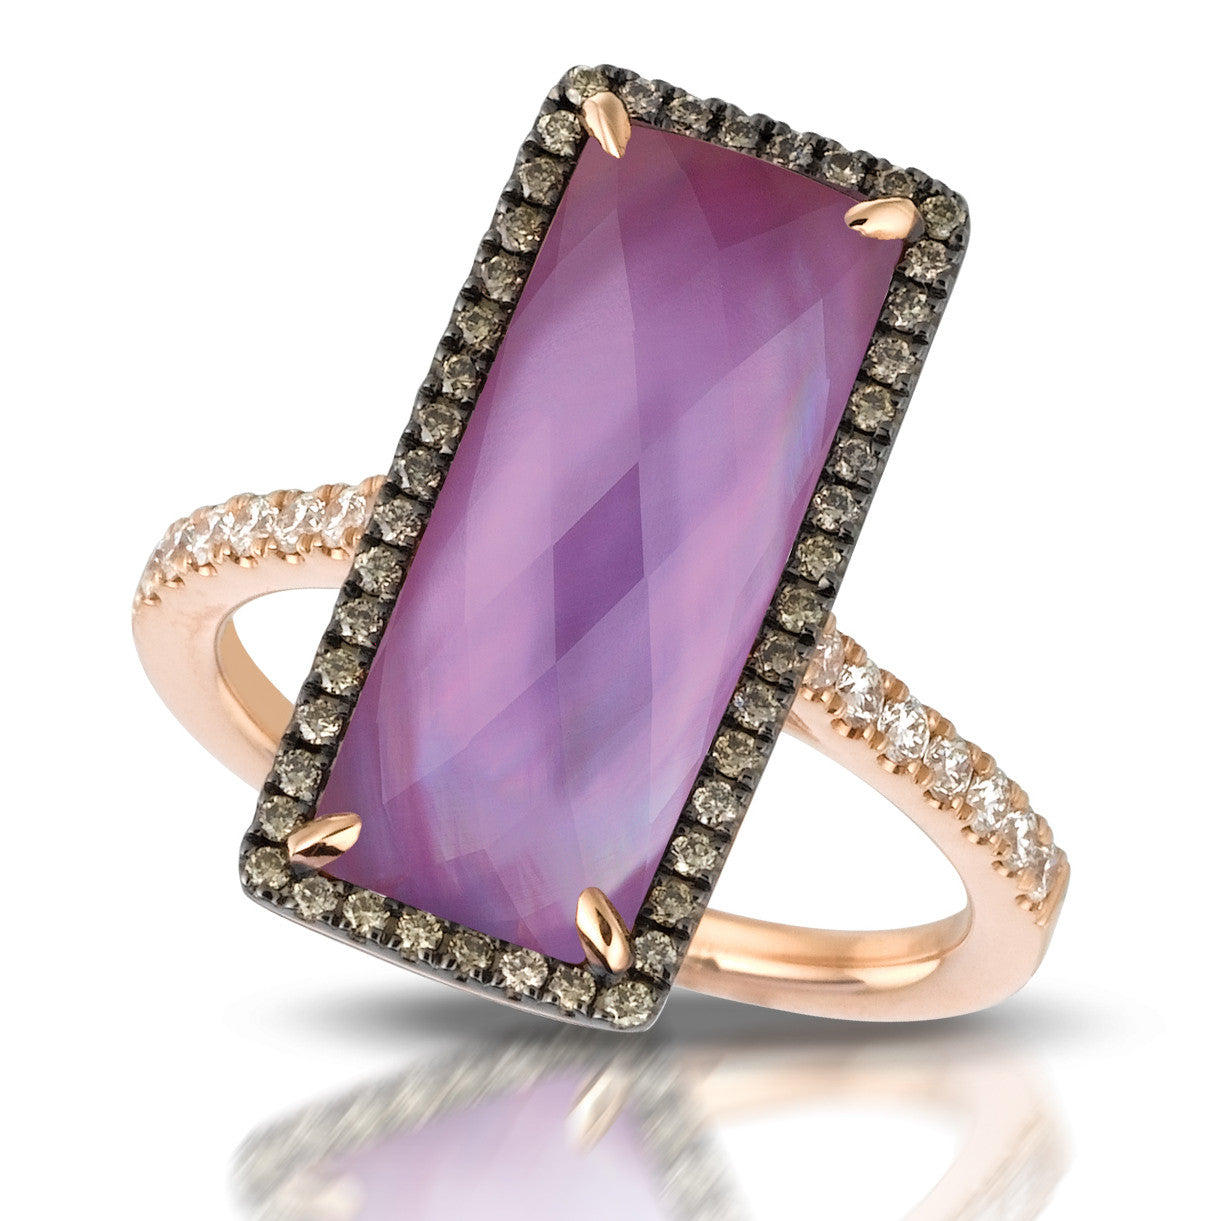 Doves Rose Gold Diamond Ring with Amethyst and Mother of Pearl in Eighteen Carat